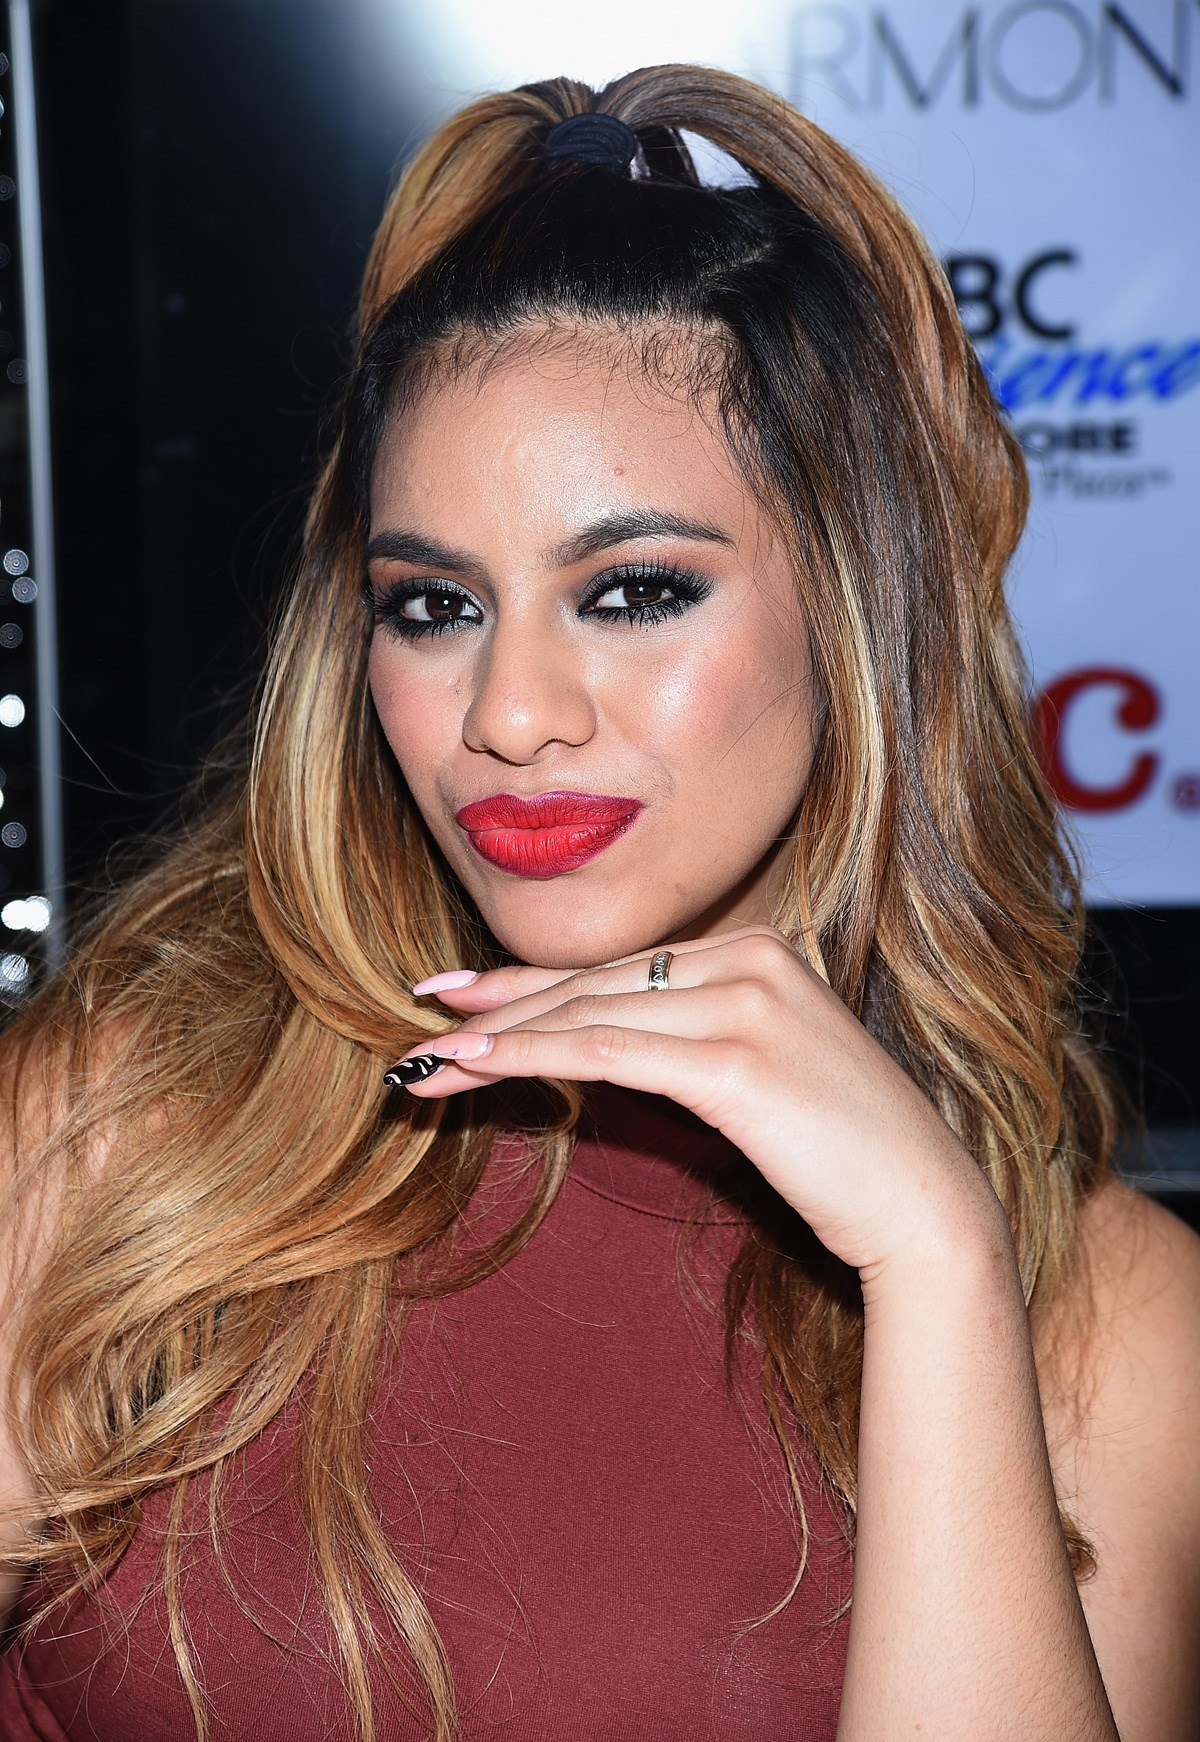 Dinah Jane Hansen | Known people - famous people news and biographies